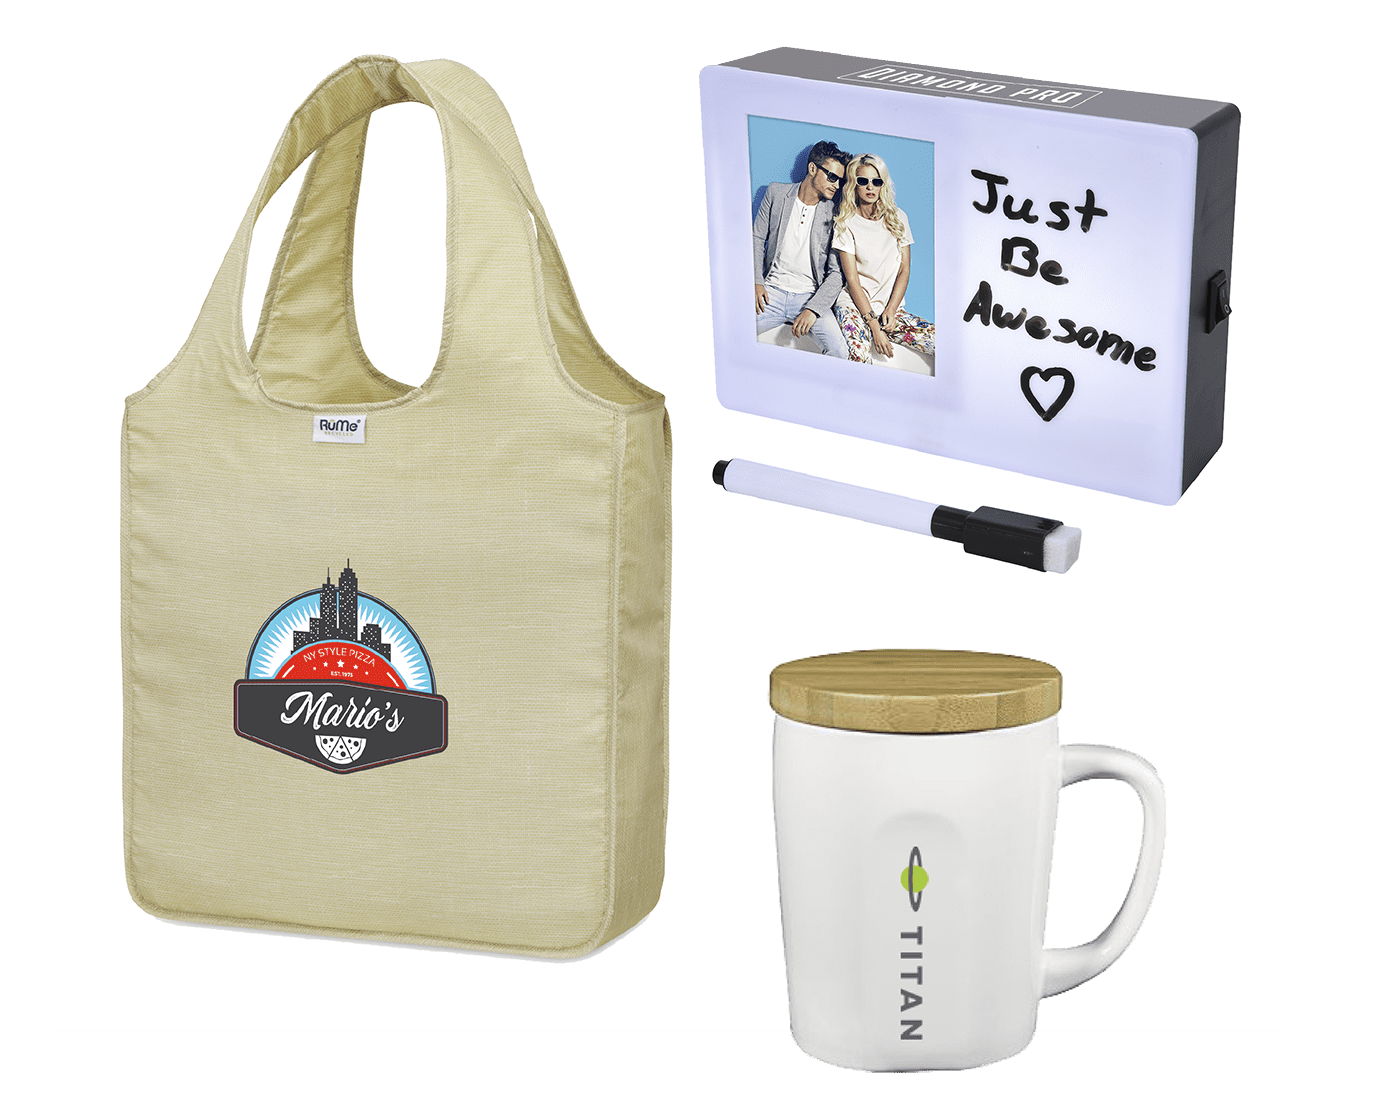 Better Days promotional products bundle